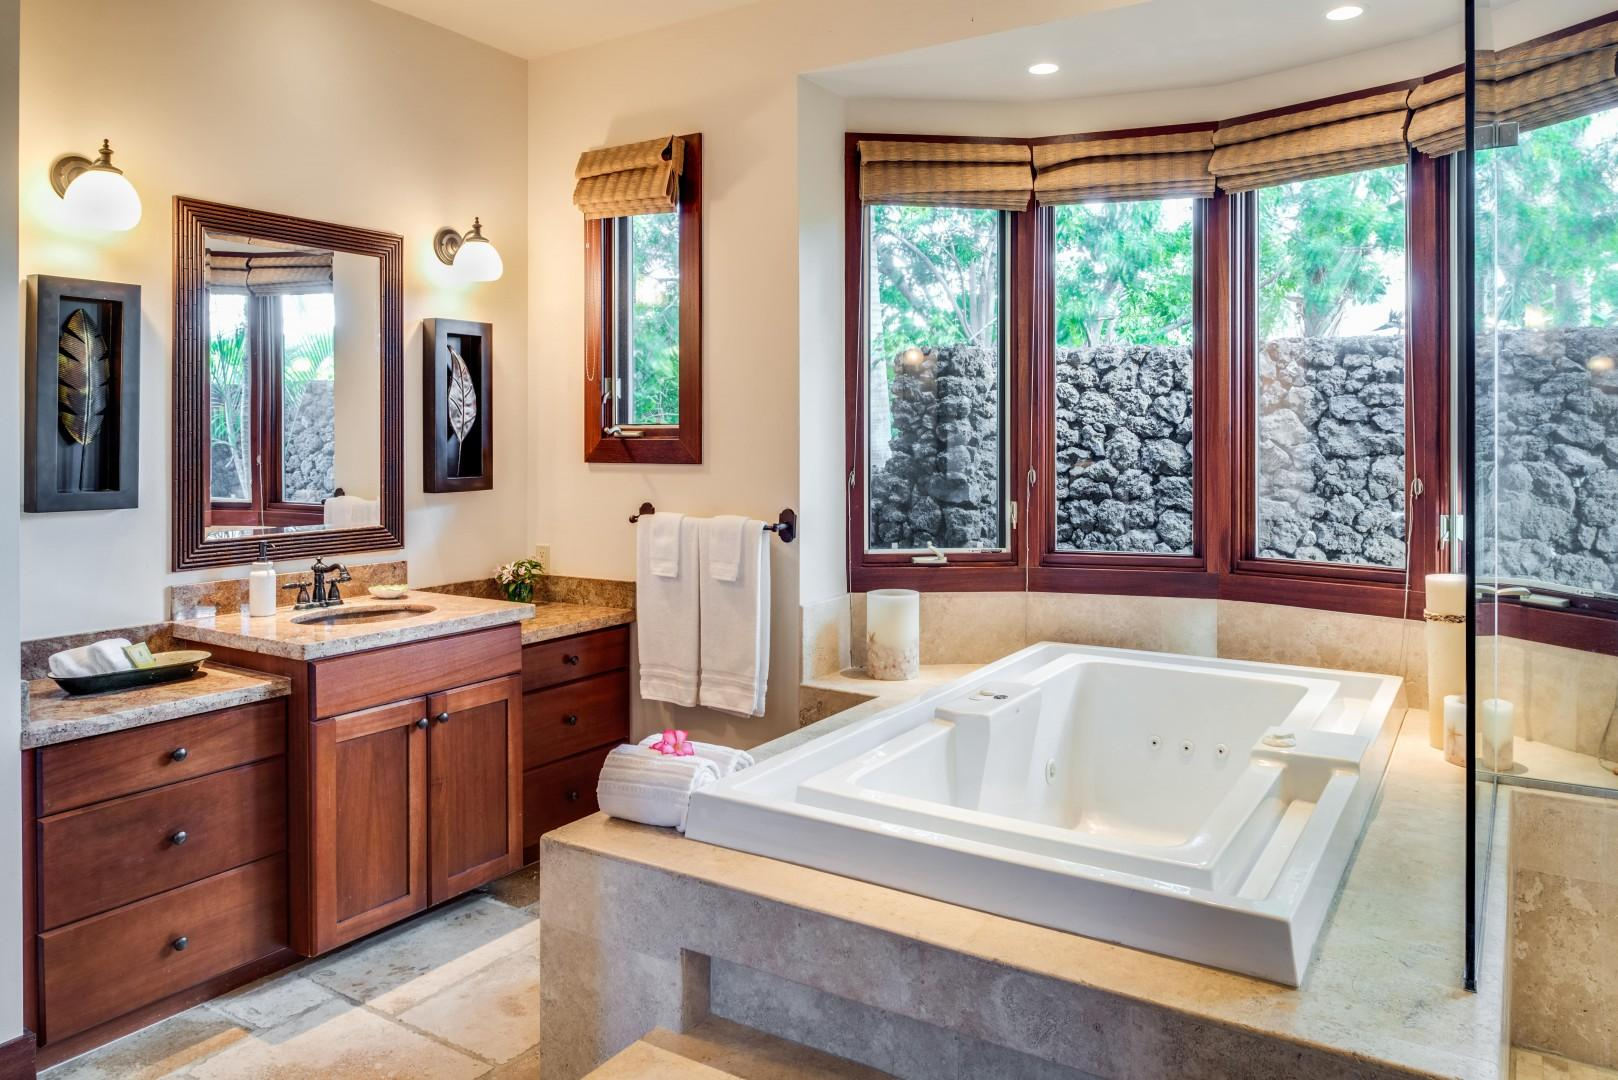 Master Bath w/ Luxurious Jetted Tub & Dual Vanity Sinks